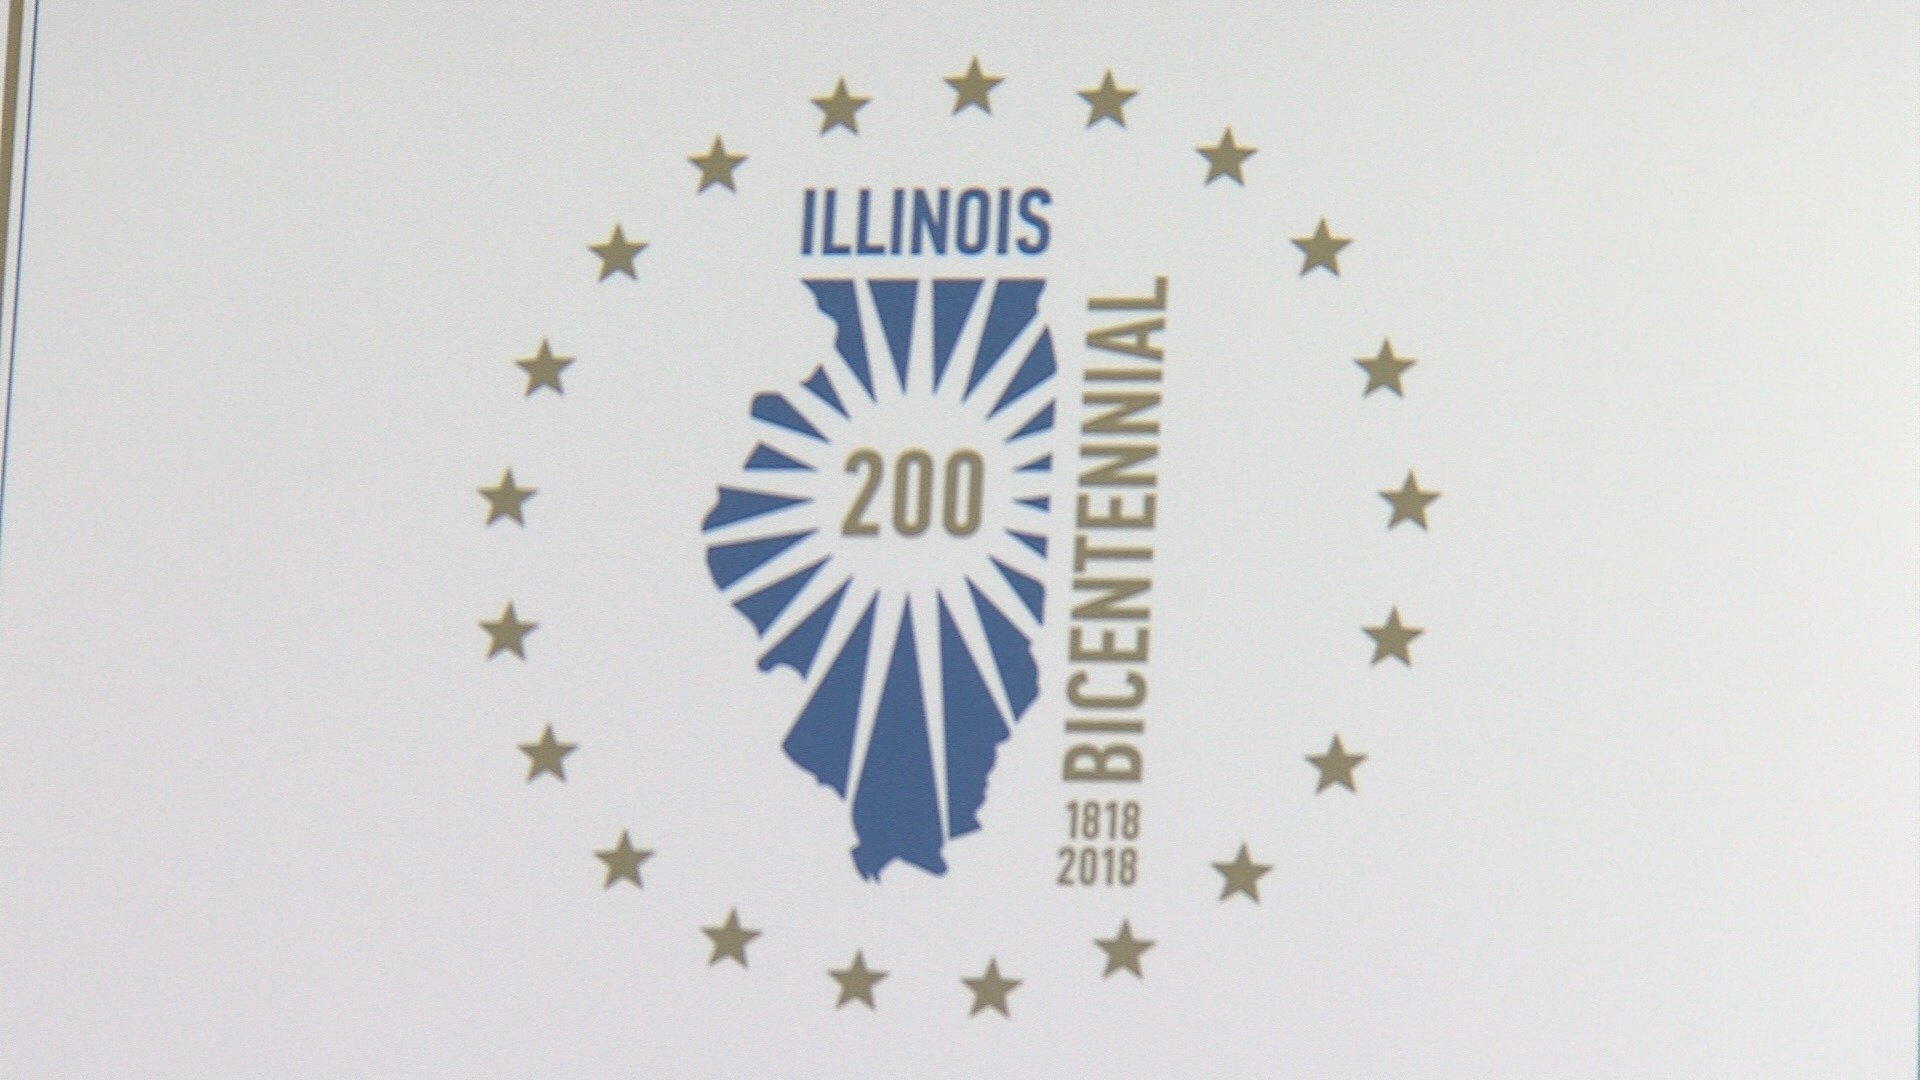 City to hold state Bicentennial flag raising on Monday